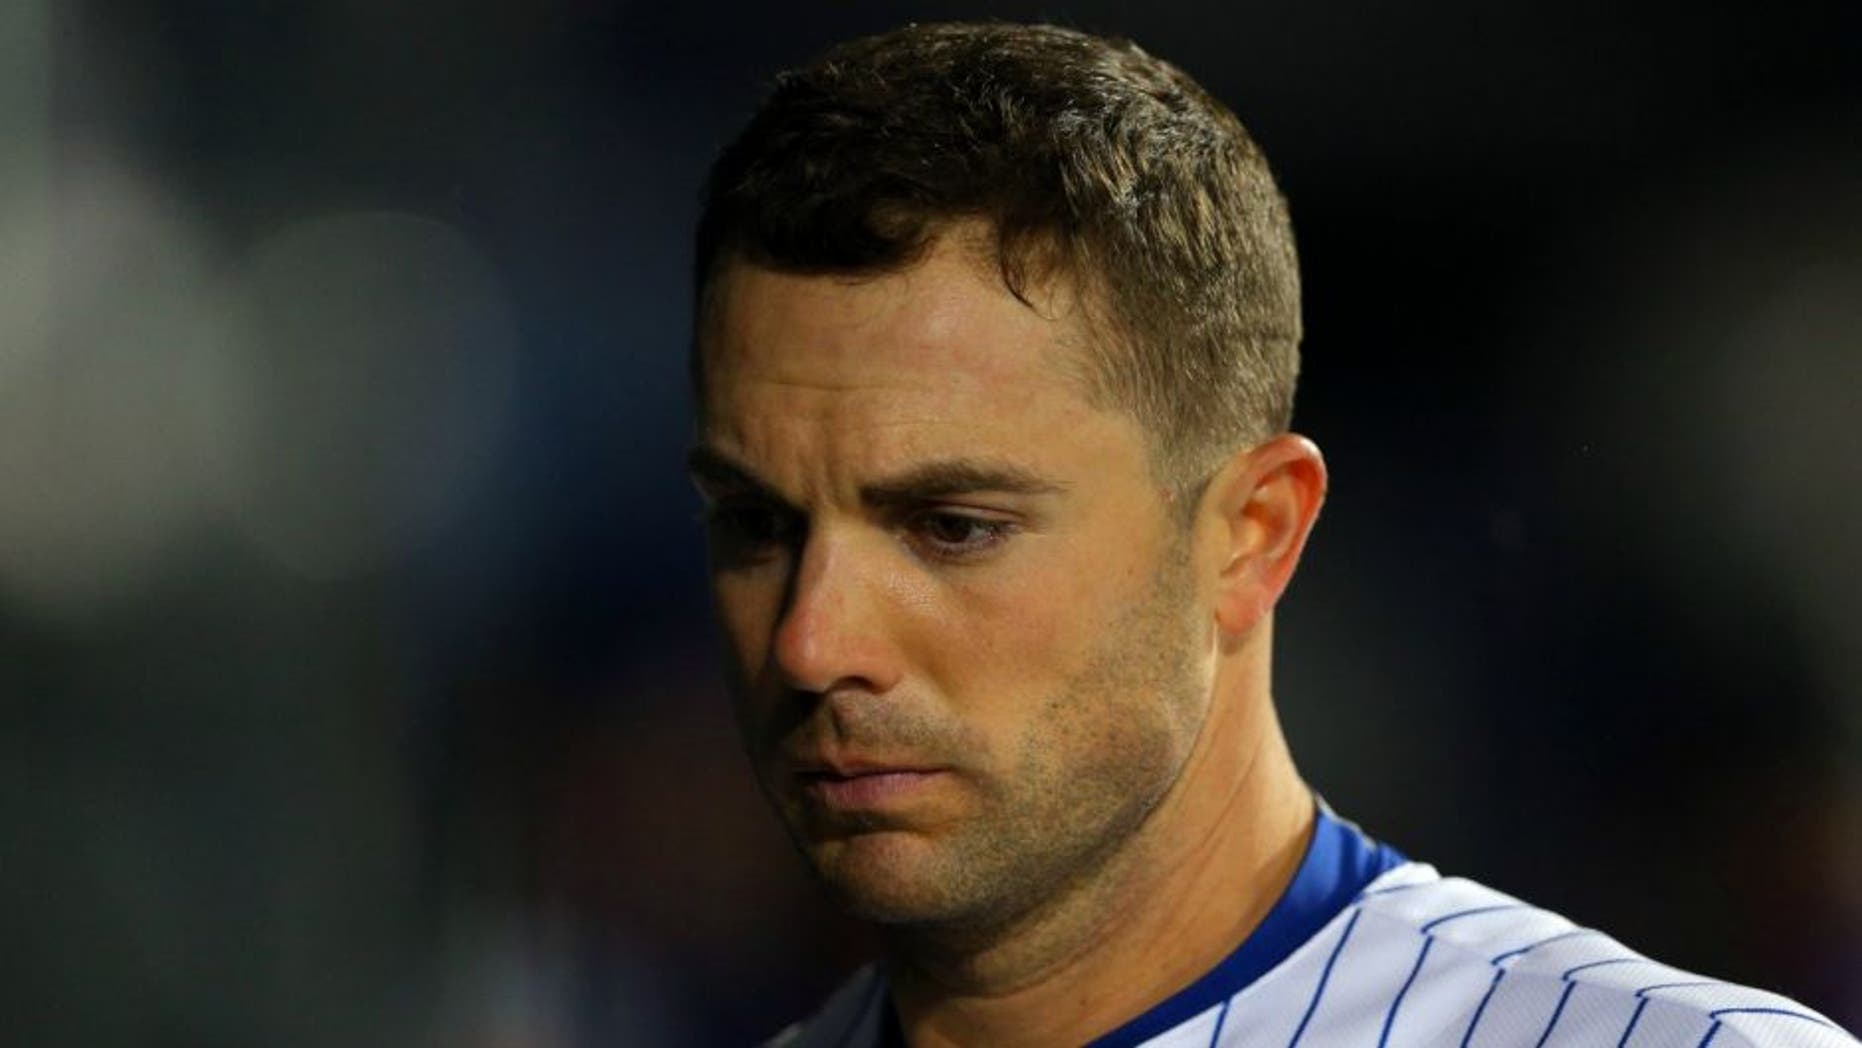 May 18, 2016; New York City, NY, USA; New York Mets third baseman David Wright (5) reacts during the ninth inning against the Washington Nationals at Citi Field. The Nationals defeated the Mets 7-1. Mandatory Credit: Brad Penner-USA TODAY Sports